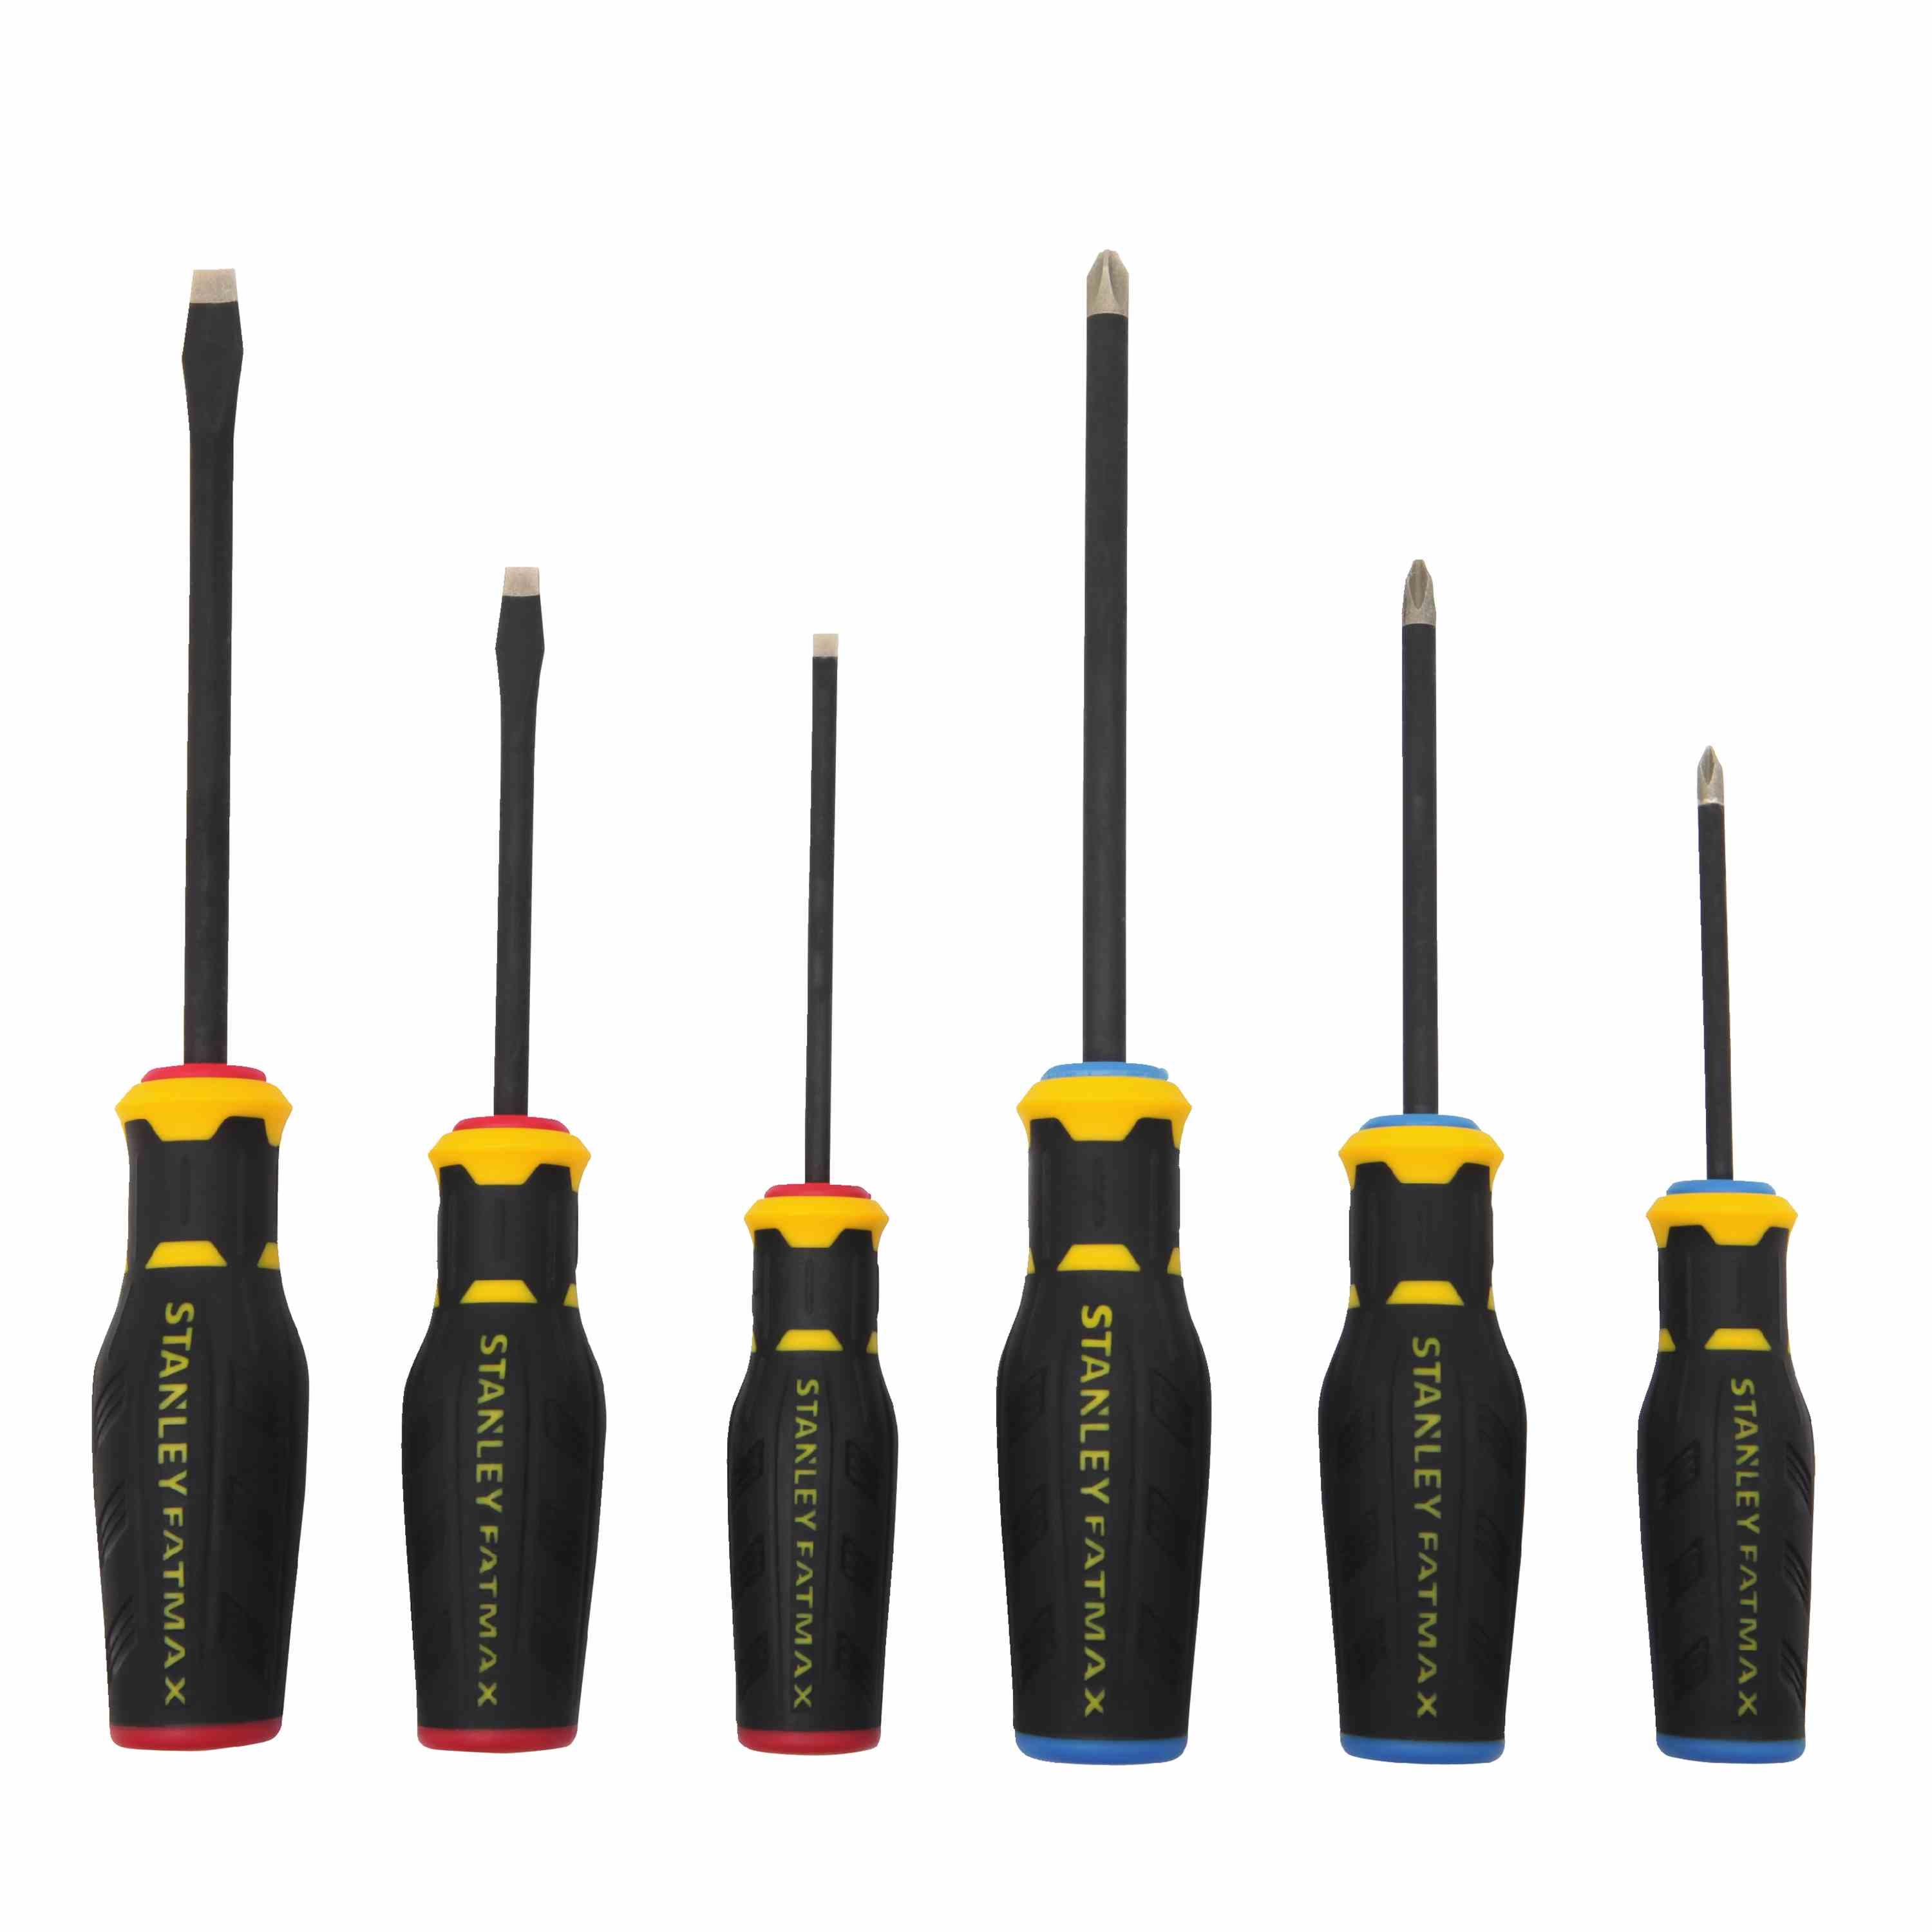 Stanley Tools - FATMAX Simulated Diamond Tip 6 Pc Screwdriver Set with Standard  Phillips - FMHT62052